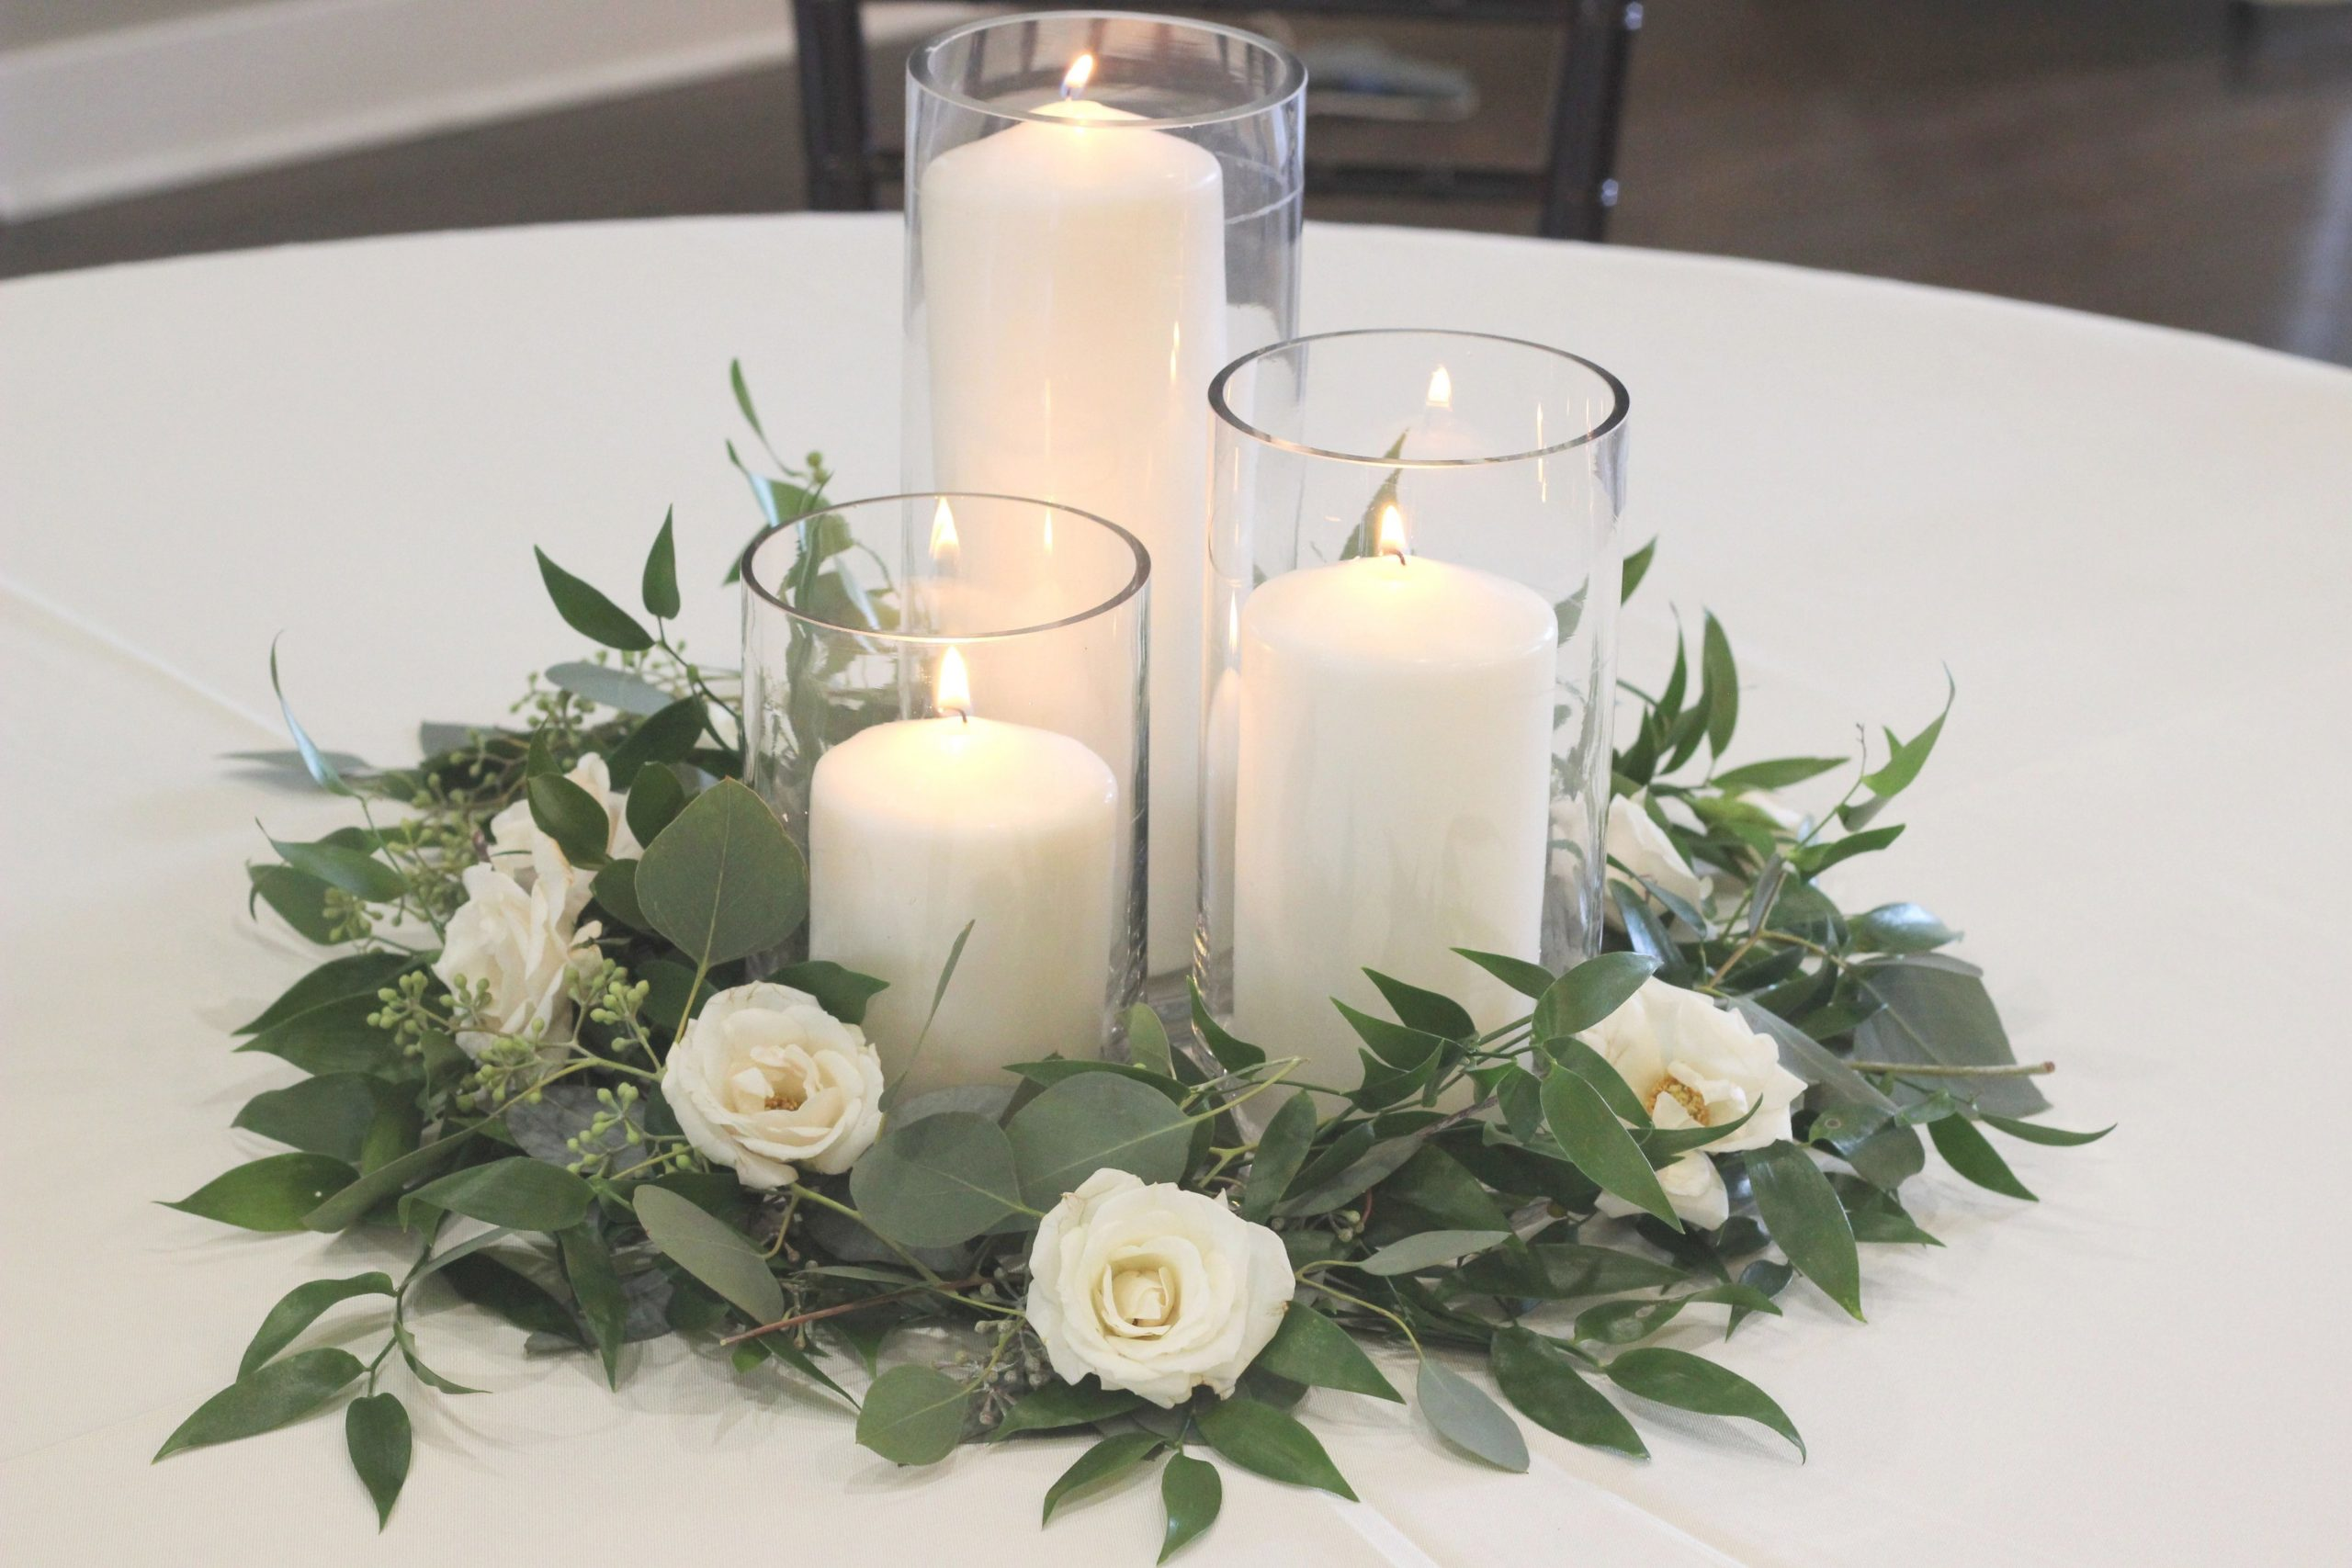 Greenery And Spray Rose Centerpiece With Pillar Candles with regard to Candle Decoration With Flowers